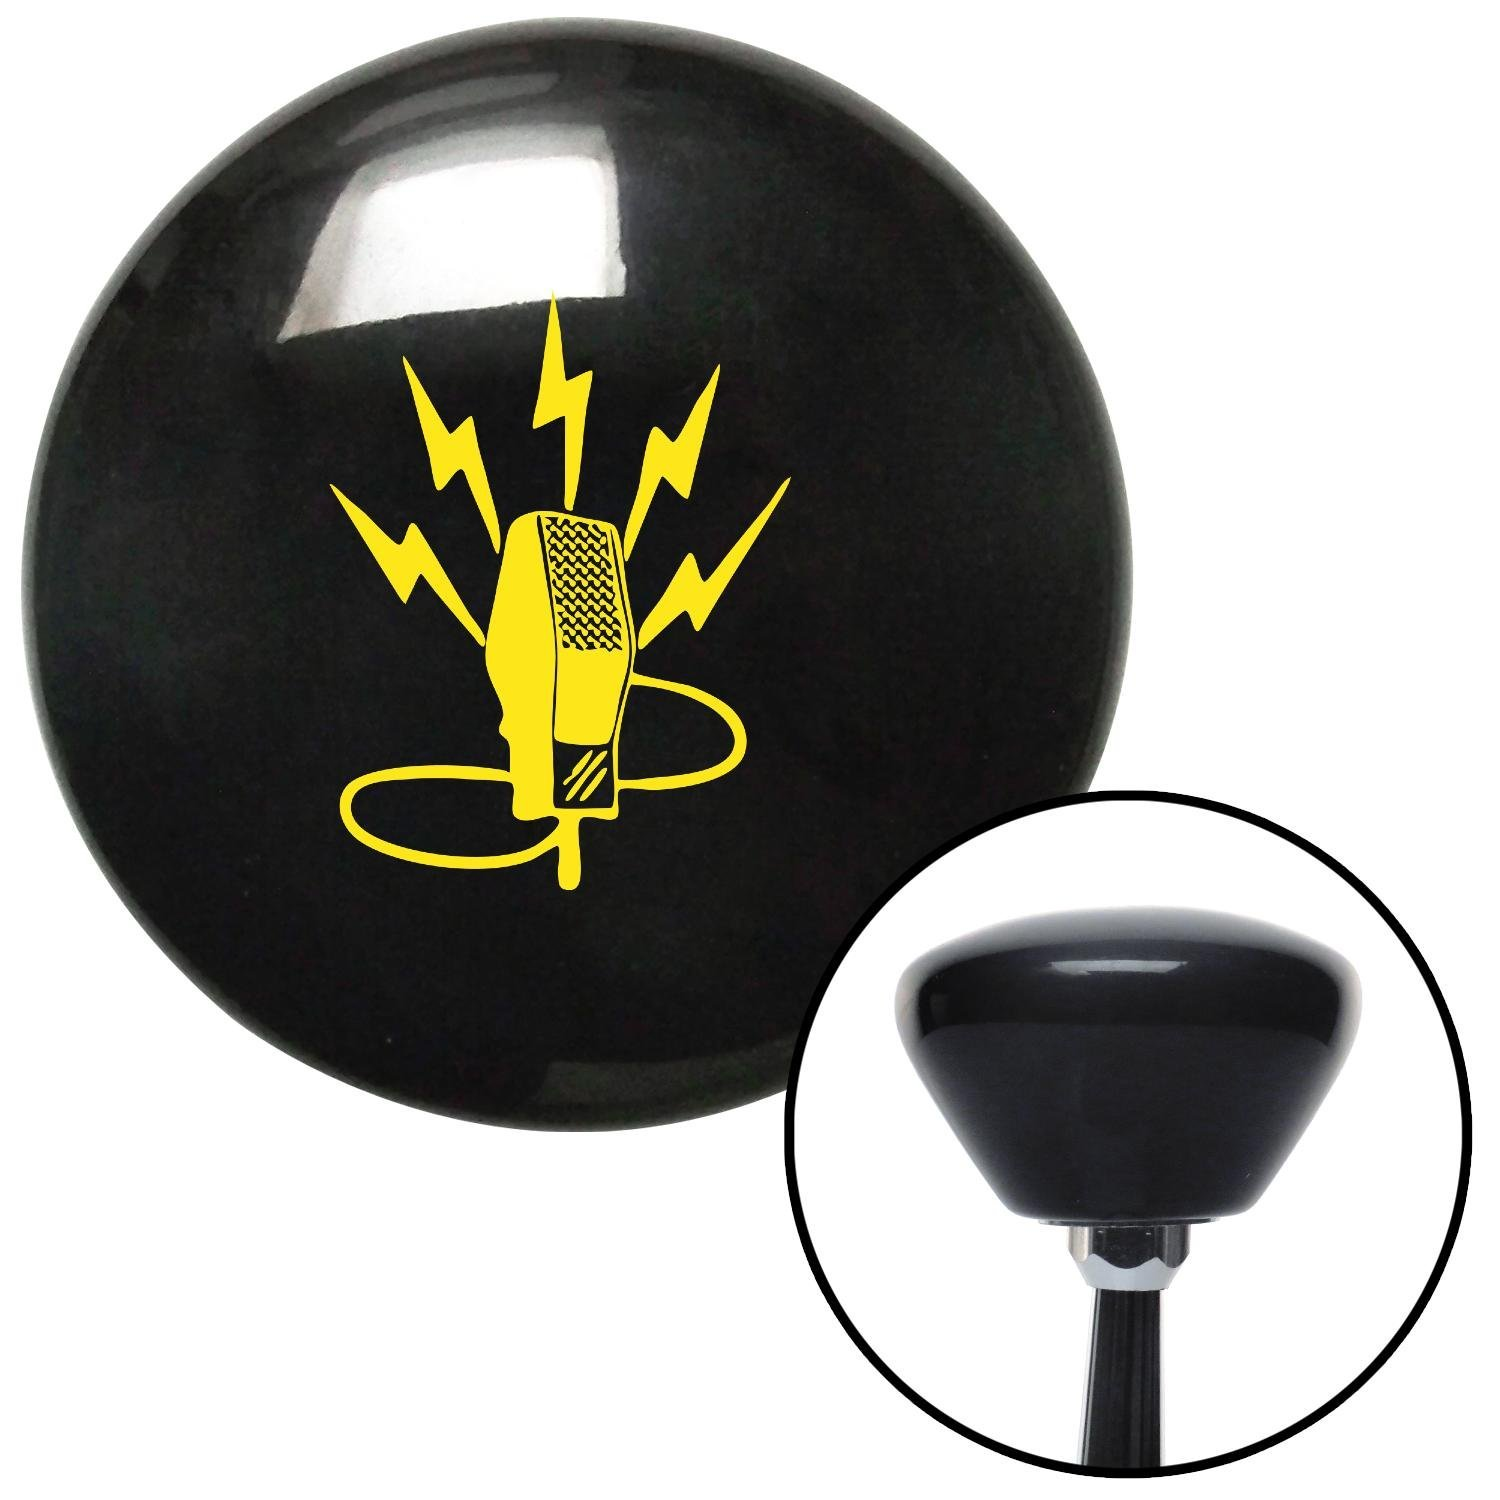 Yellow Microphone Energy American Shifter 147140 Black Retro Shift Knob with M16 x 1.5 Insert